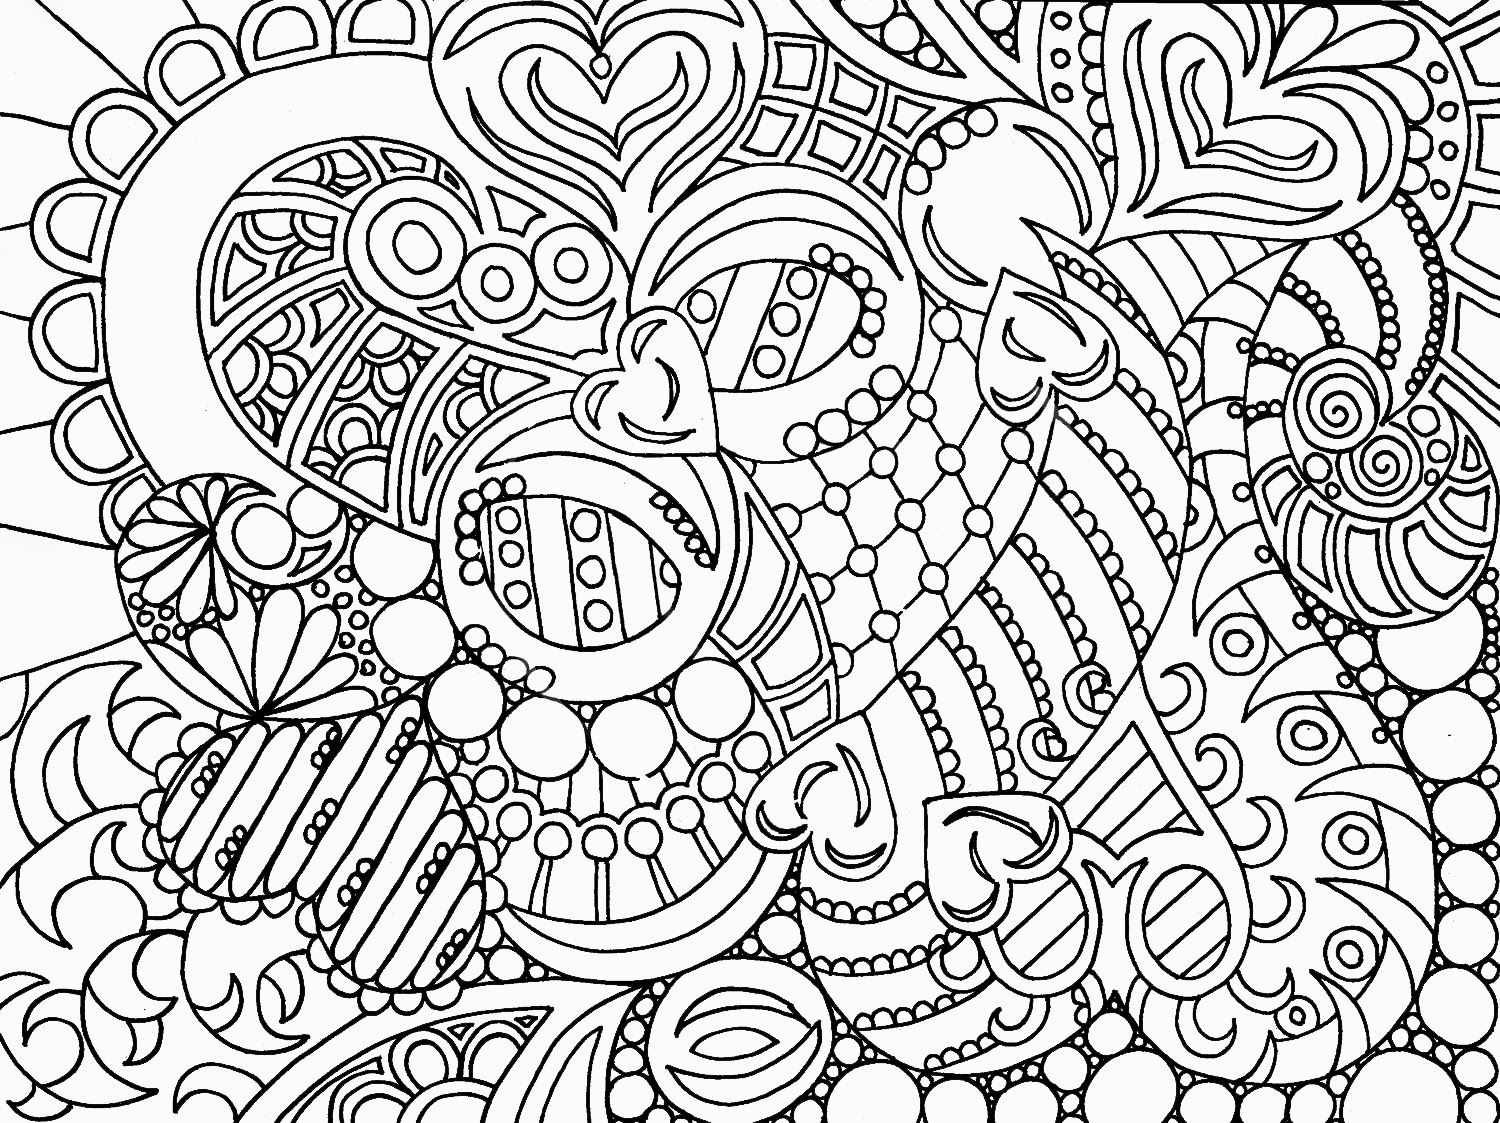 Abstract Designs Drawing at GetDrawings.com | Free for personal use ...